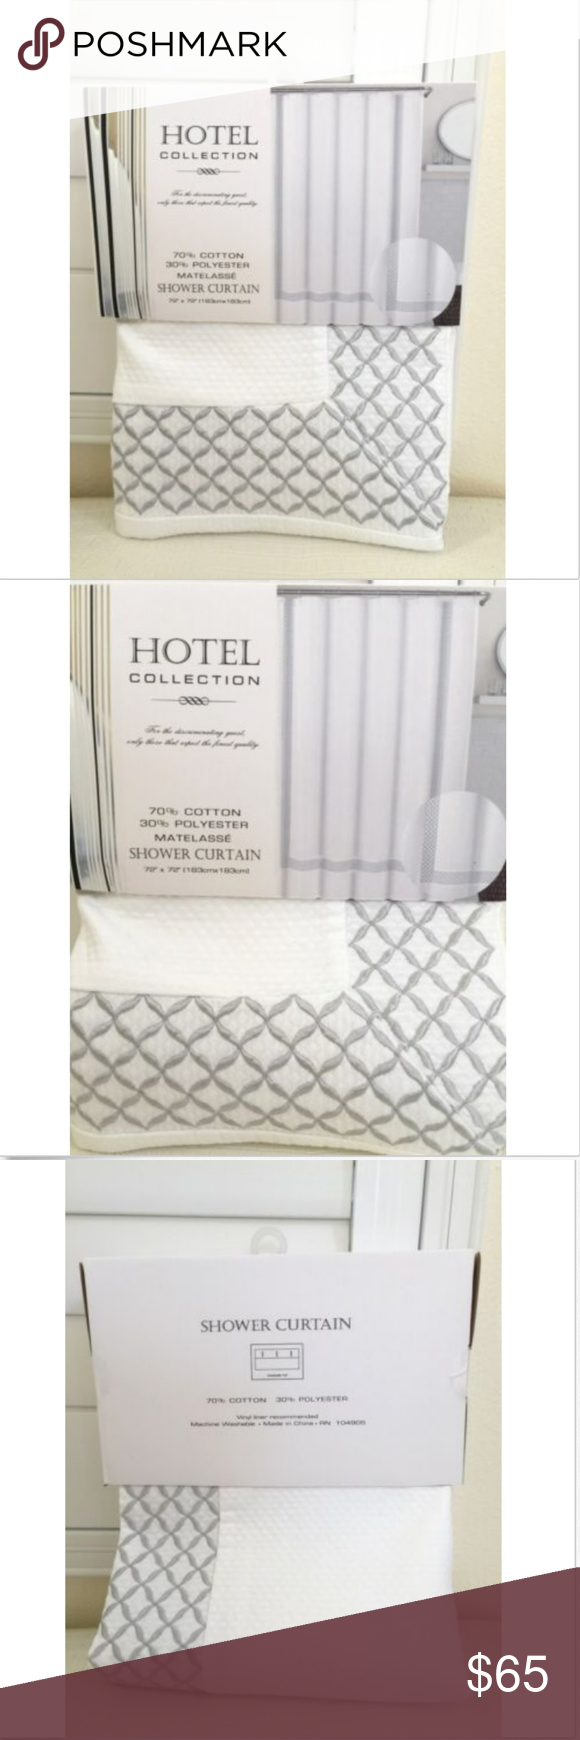 Hotel Collection Shower Curtain Nwt Hotel Collection Silver